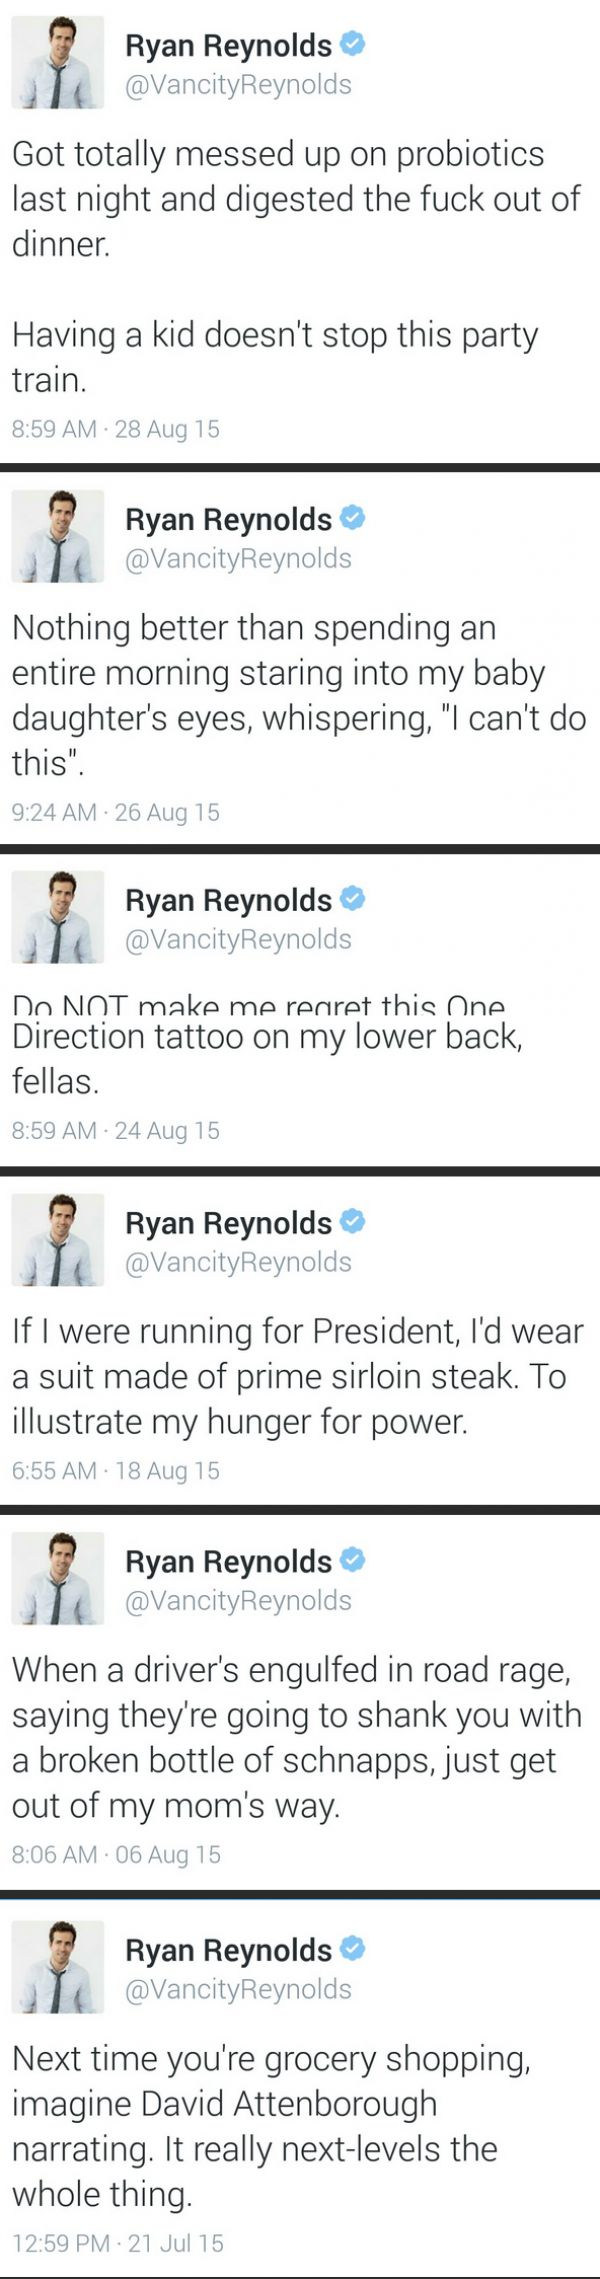 Ryan Reynolds Twitter is my new favorite thing  #RePin by AT Social Media Marketing - Pinterest Marketing Specialists ATSocialMedia.co.uk